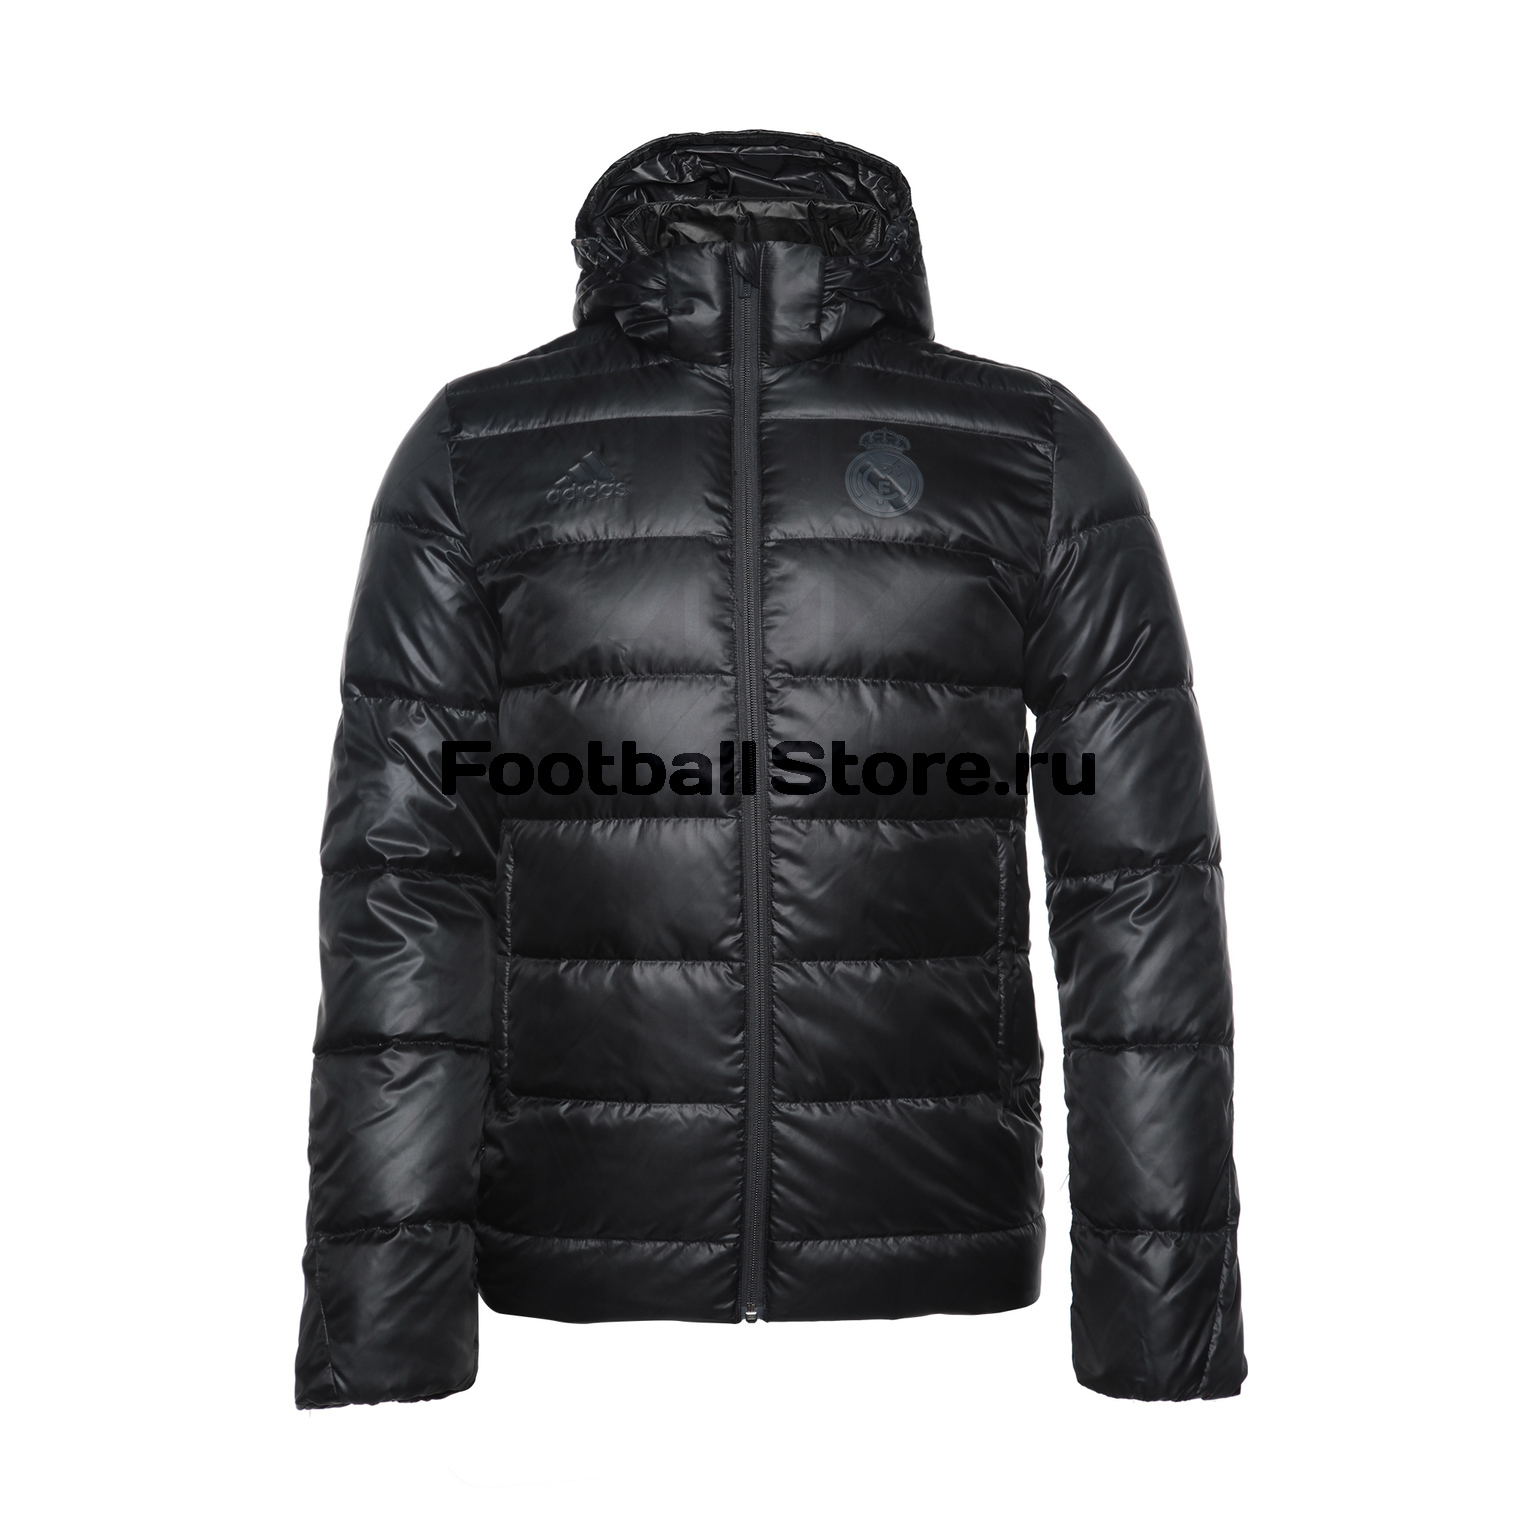 Куртки/Пуховики Adidas Пуховик Adidas Real Madrid BR2527 real madrid adidas свитер adidas real madrid euhybrid top bq7851